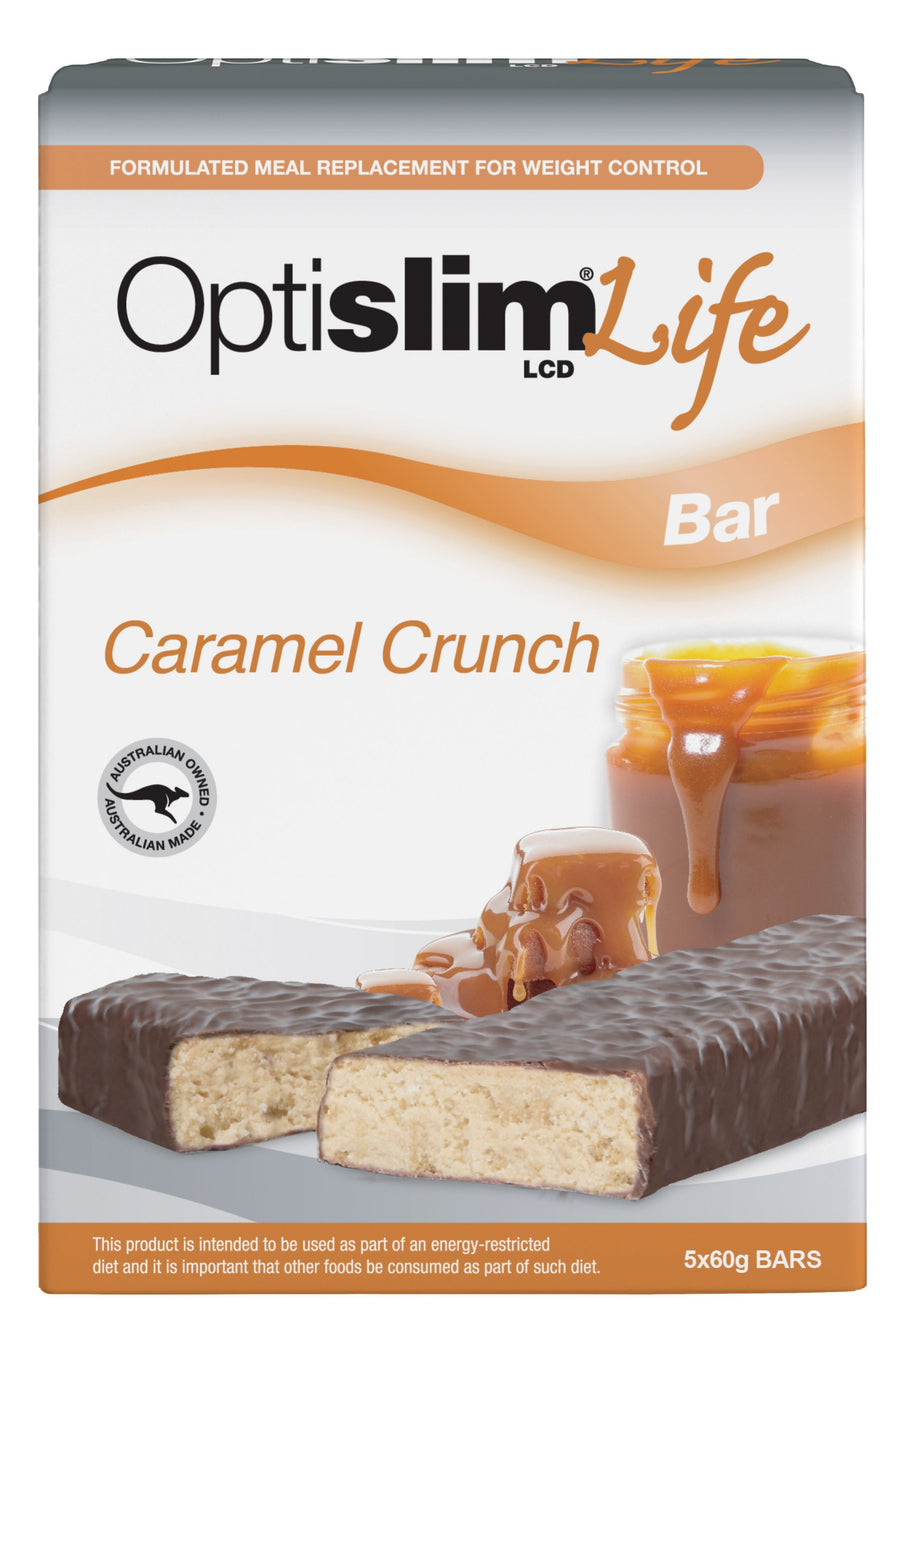 Optislim Life LCD Bar Caramel Crunch (5x60g) Weight Loss OptiSlim